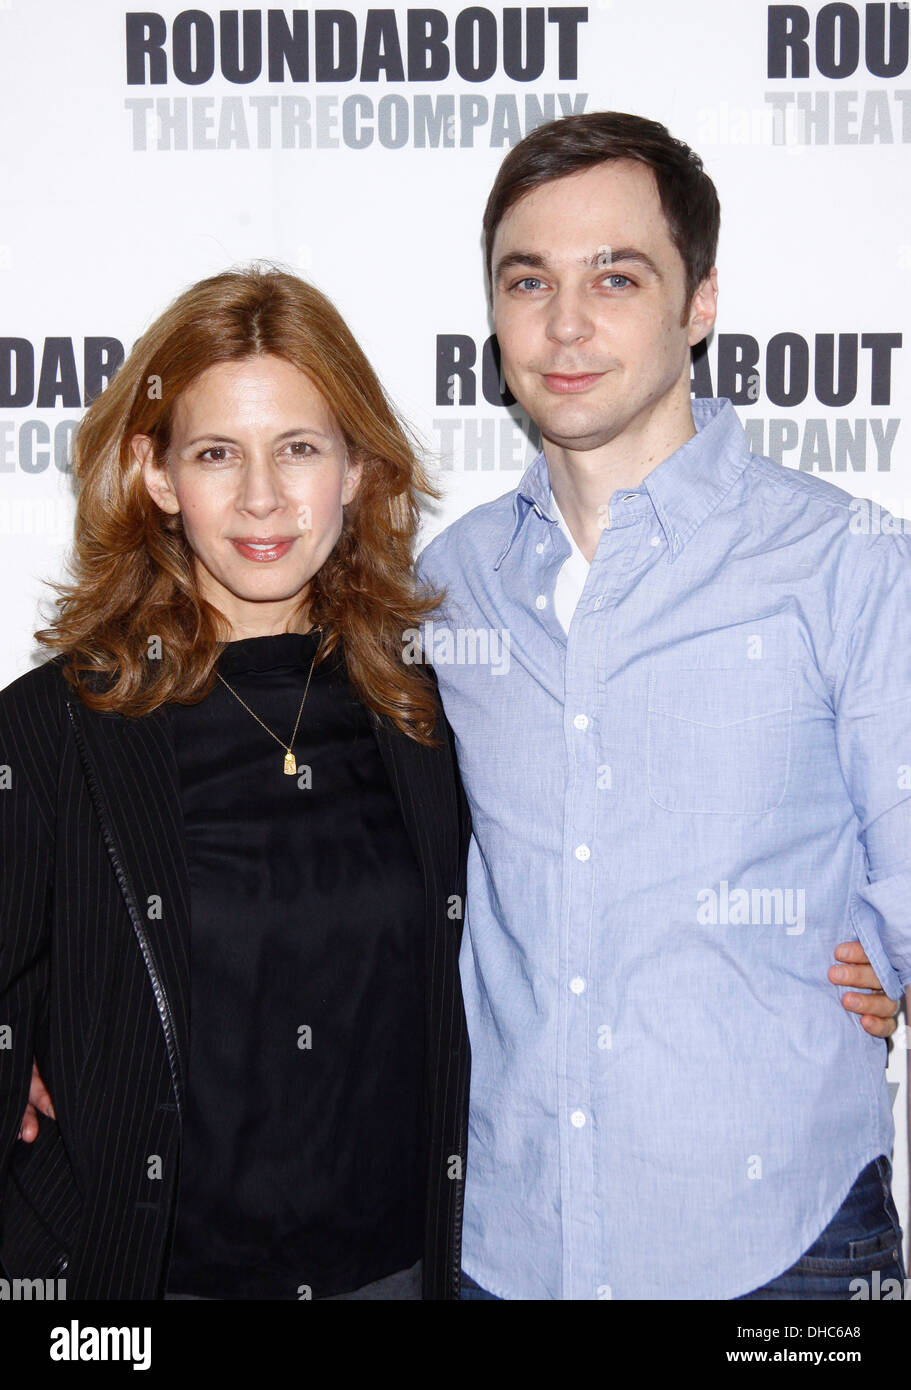 Jessica hecht and jim parsons meet and greet with cast of broadway jessica hecht and jim parsons meet and greet with cast of broadway play harvey held at roundabout theatre company rehearsal m4hsunfo